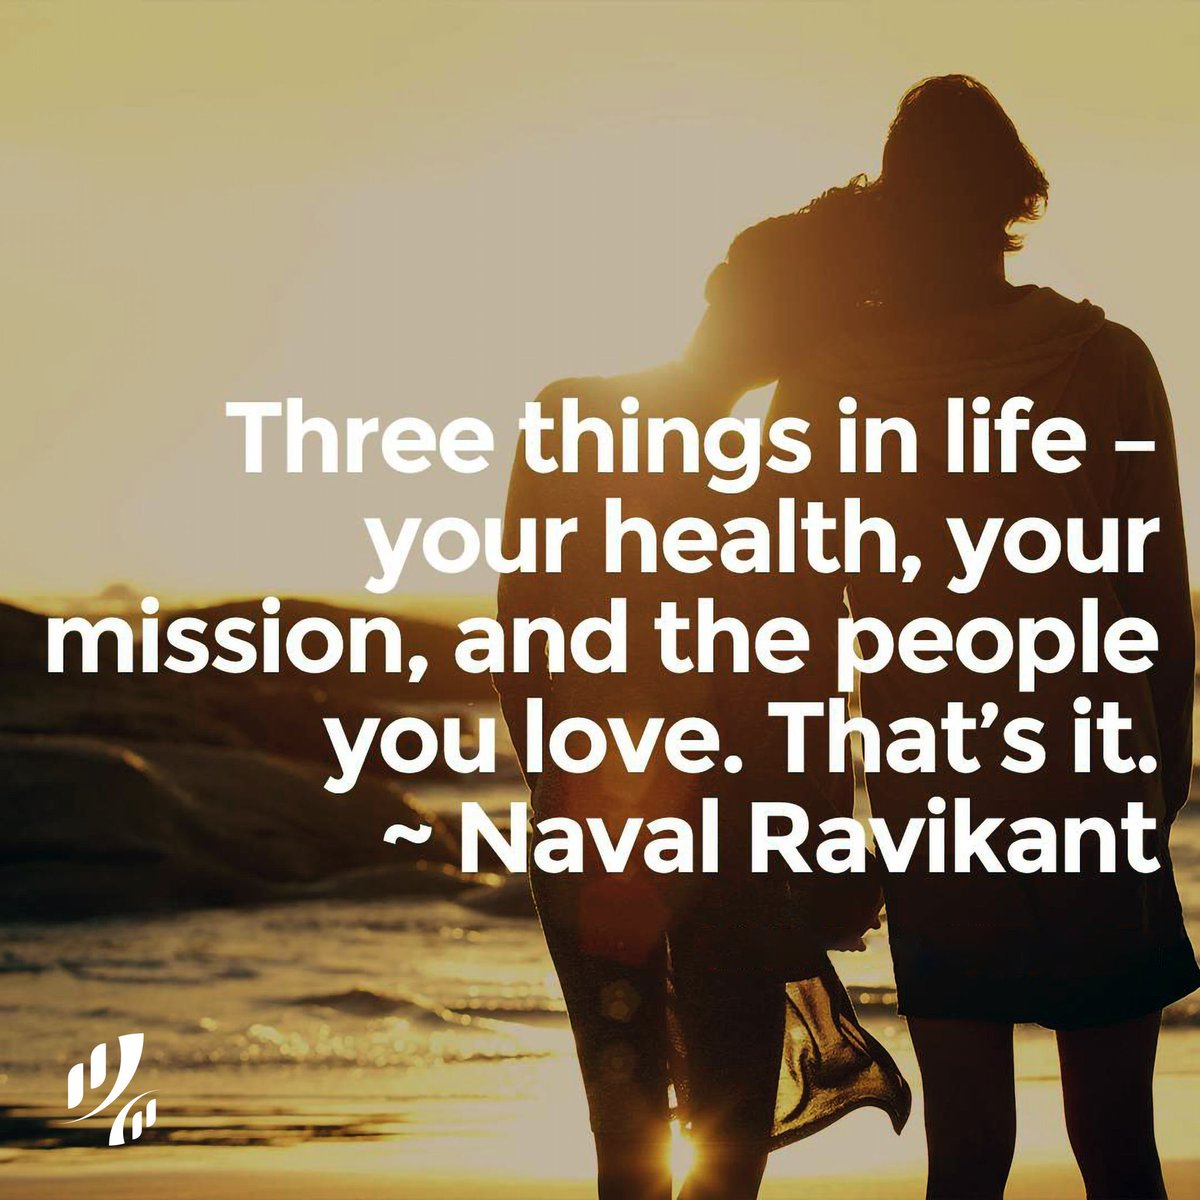 That's IT !!! . . #health #mission #peoplewhomatter #thosewelove #stayhealthy #findyourmission #yourpurpose #bekind #listen #missionlife #findit #family #loveyourcrew #thatsit #simple #uncluttered https://t.co/tXJfG4nUnW